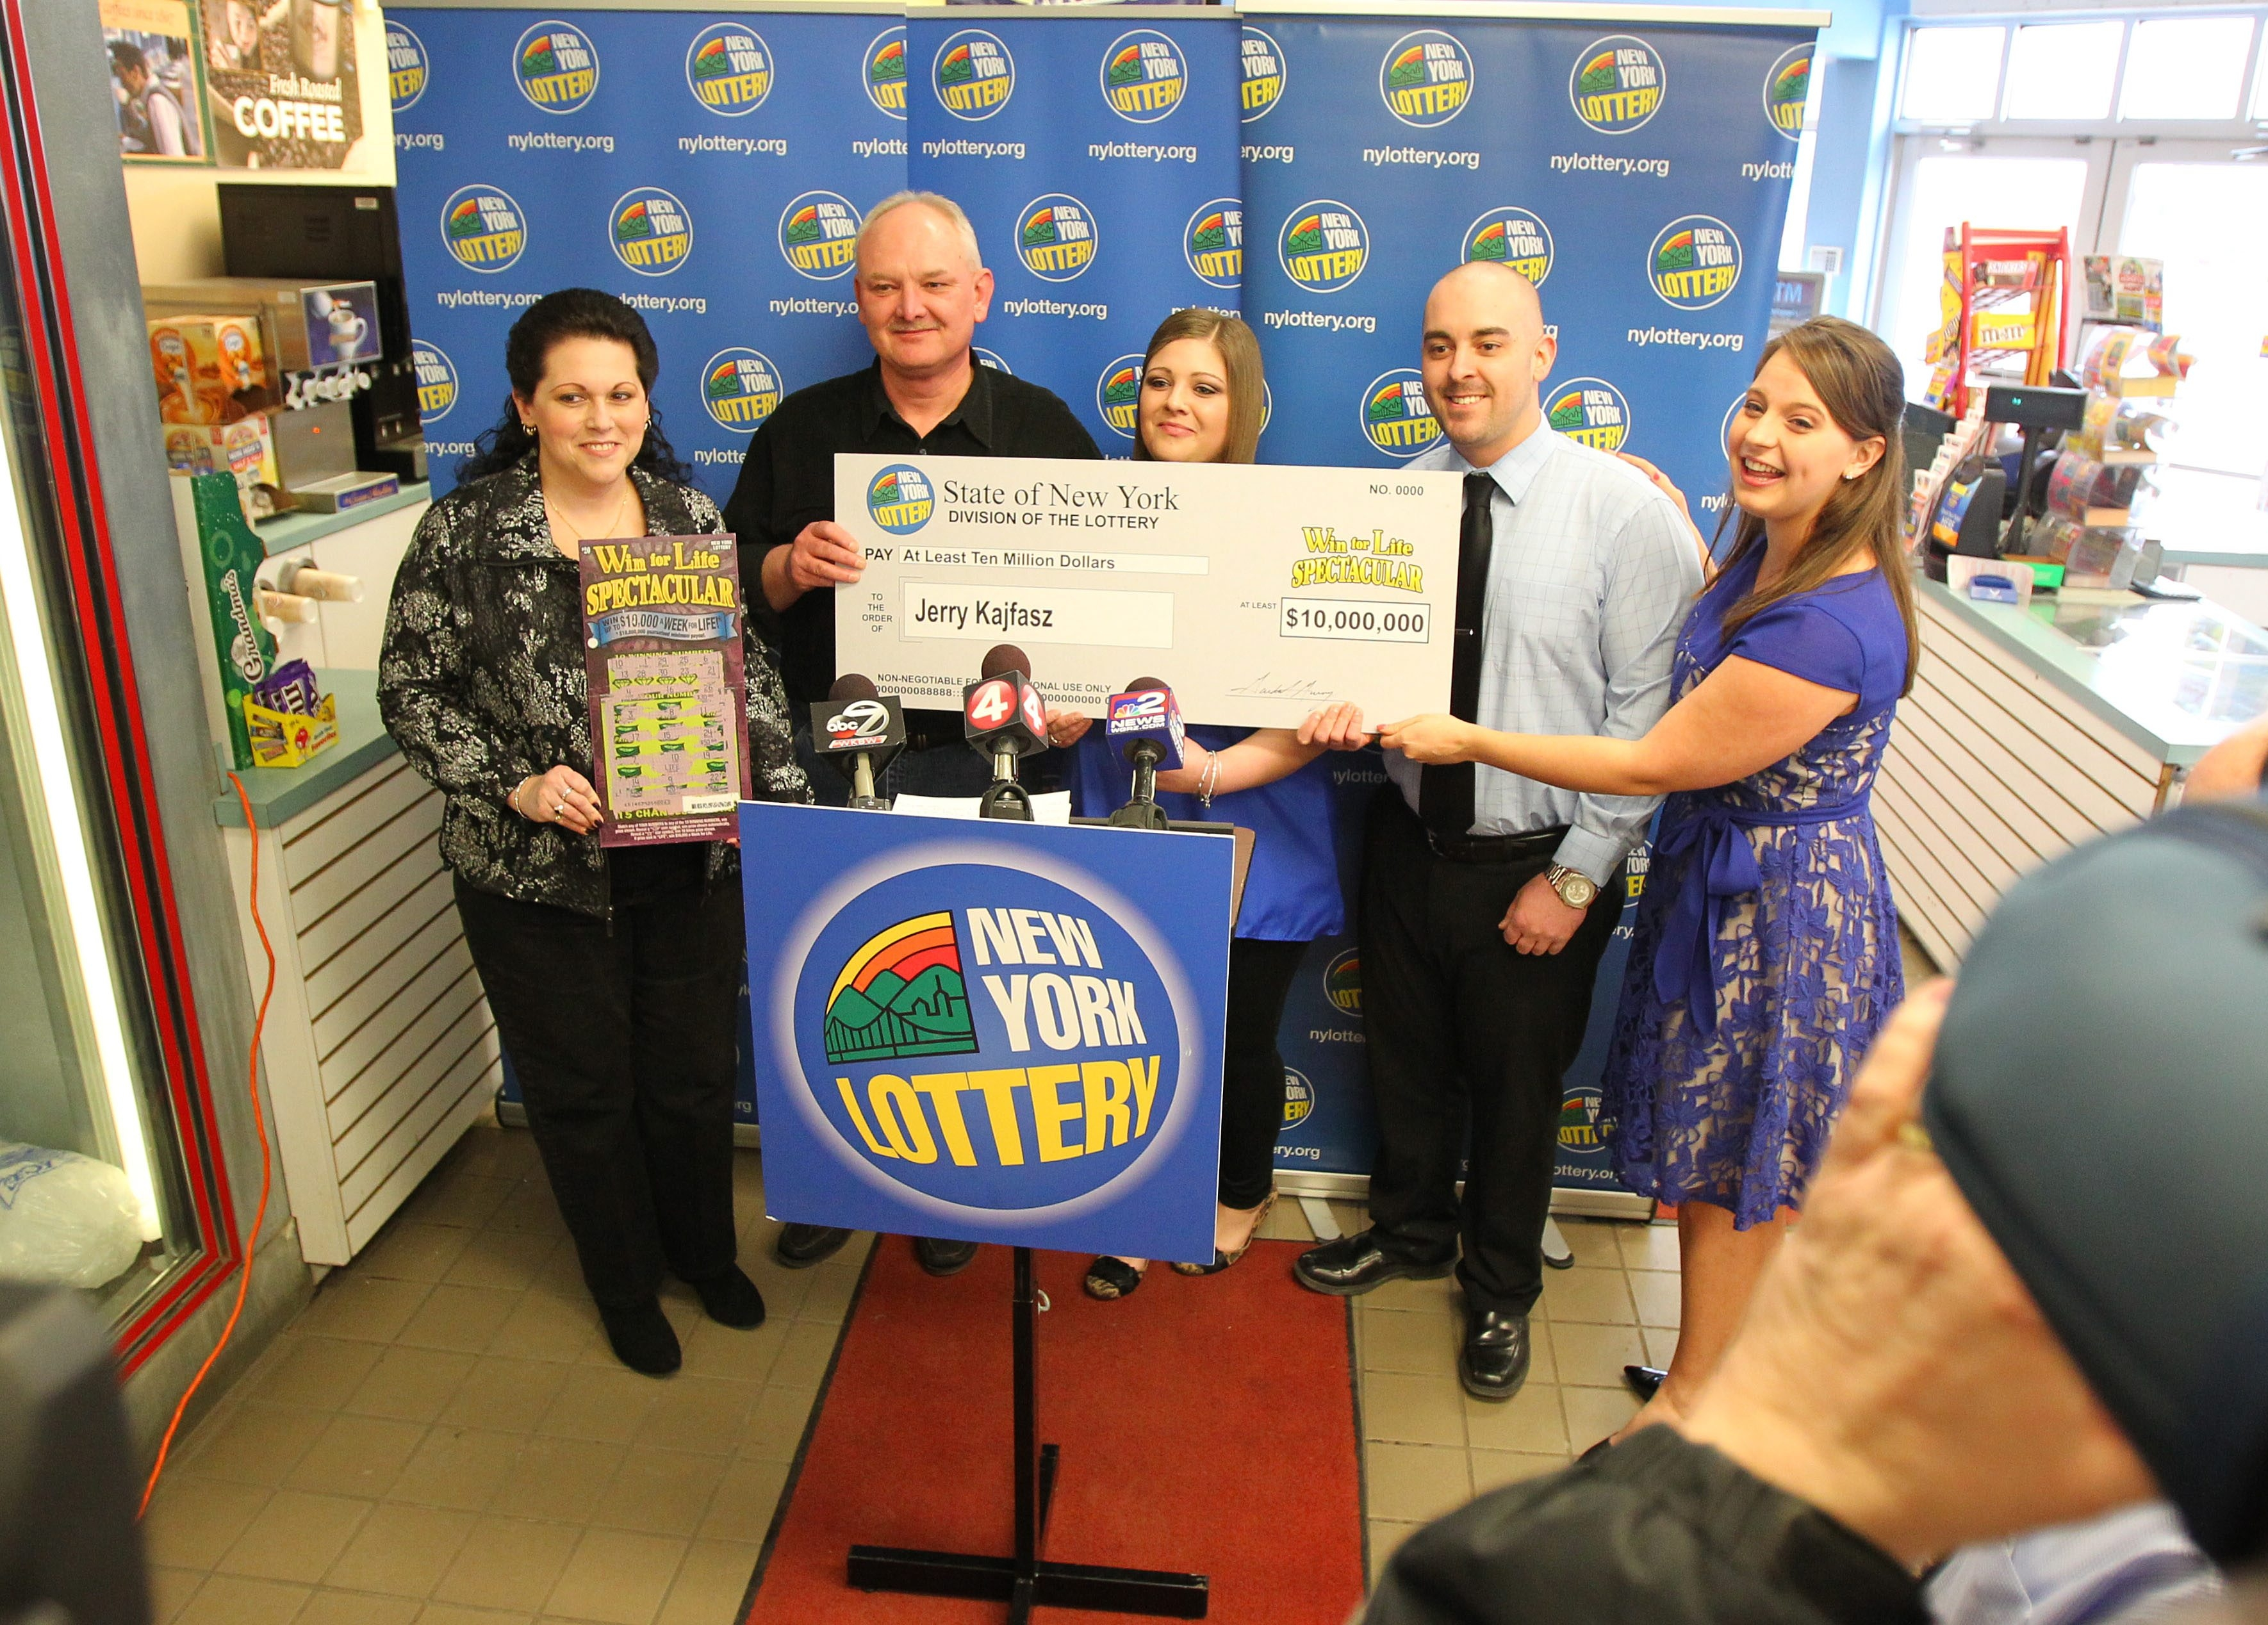 The Kajfasz family, from left, Anne, Jerry, Jackie and Frank, accept a ceremonial check from New York Lottery's Gretchen Dizer, right, Tuesday.